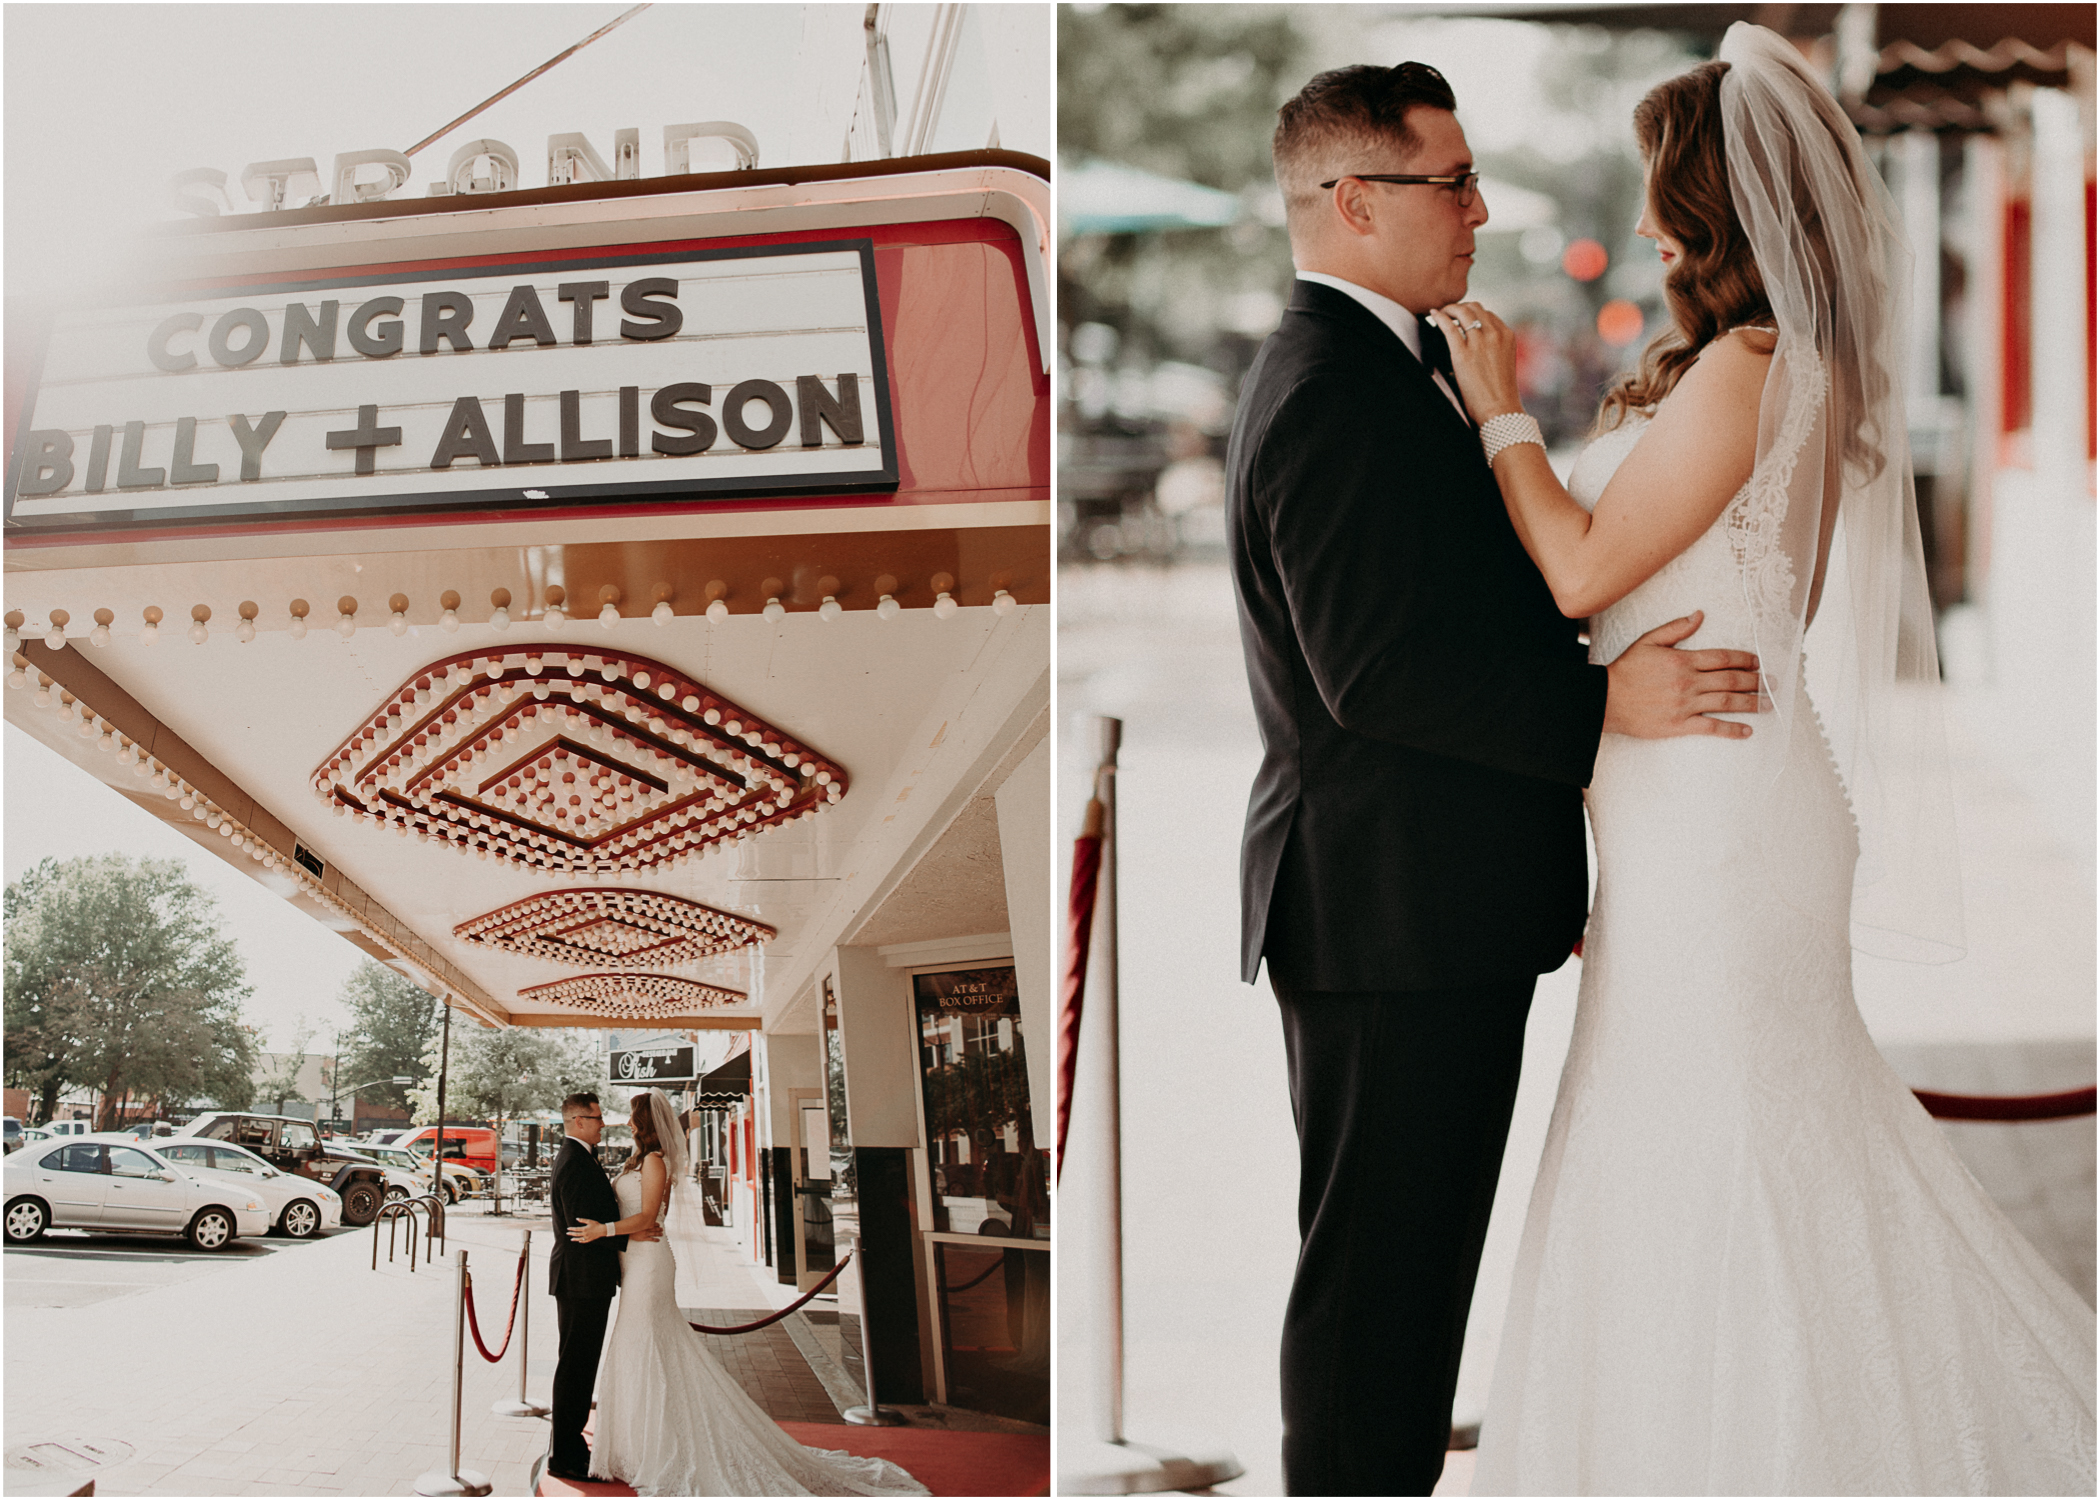 Allison and Billy - earlsmithstrand_marietta square georgia wedding photography-36.jpg